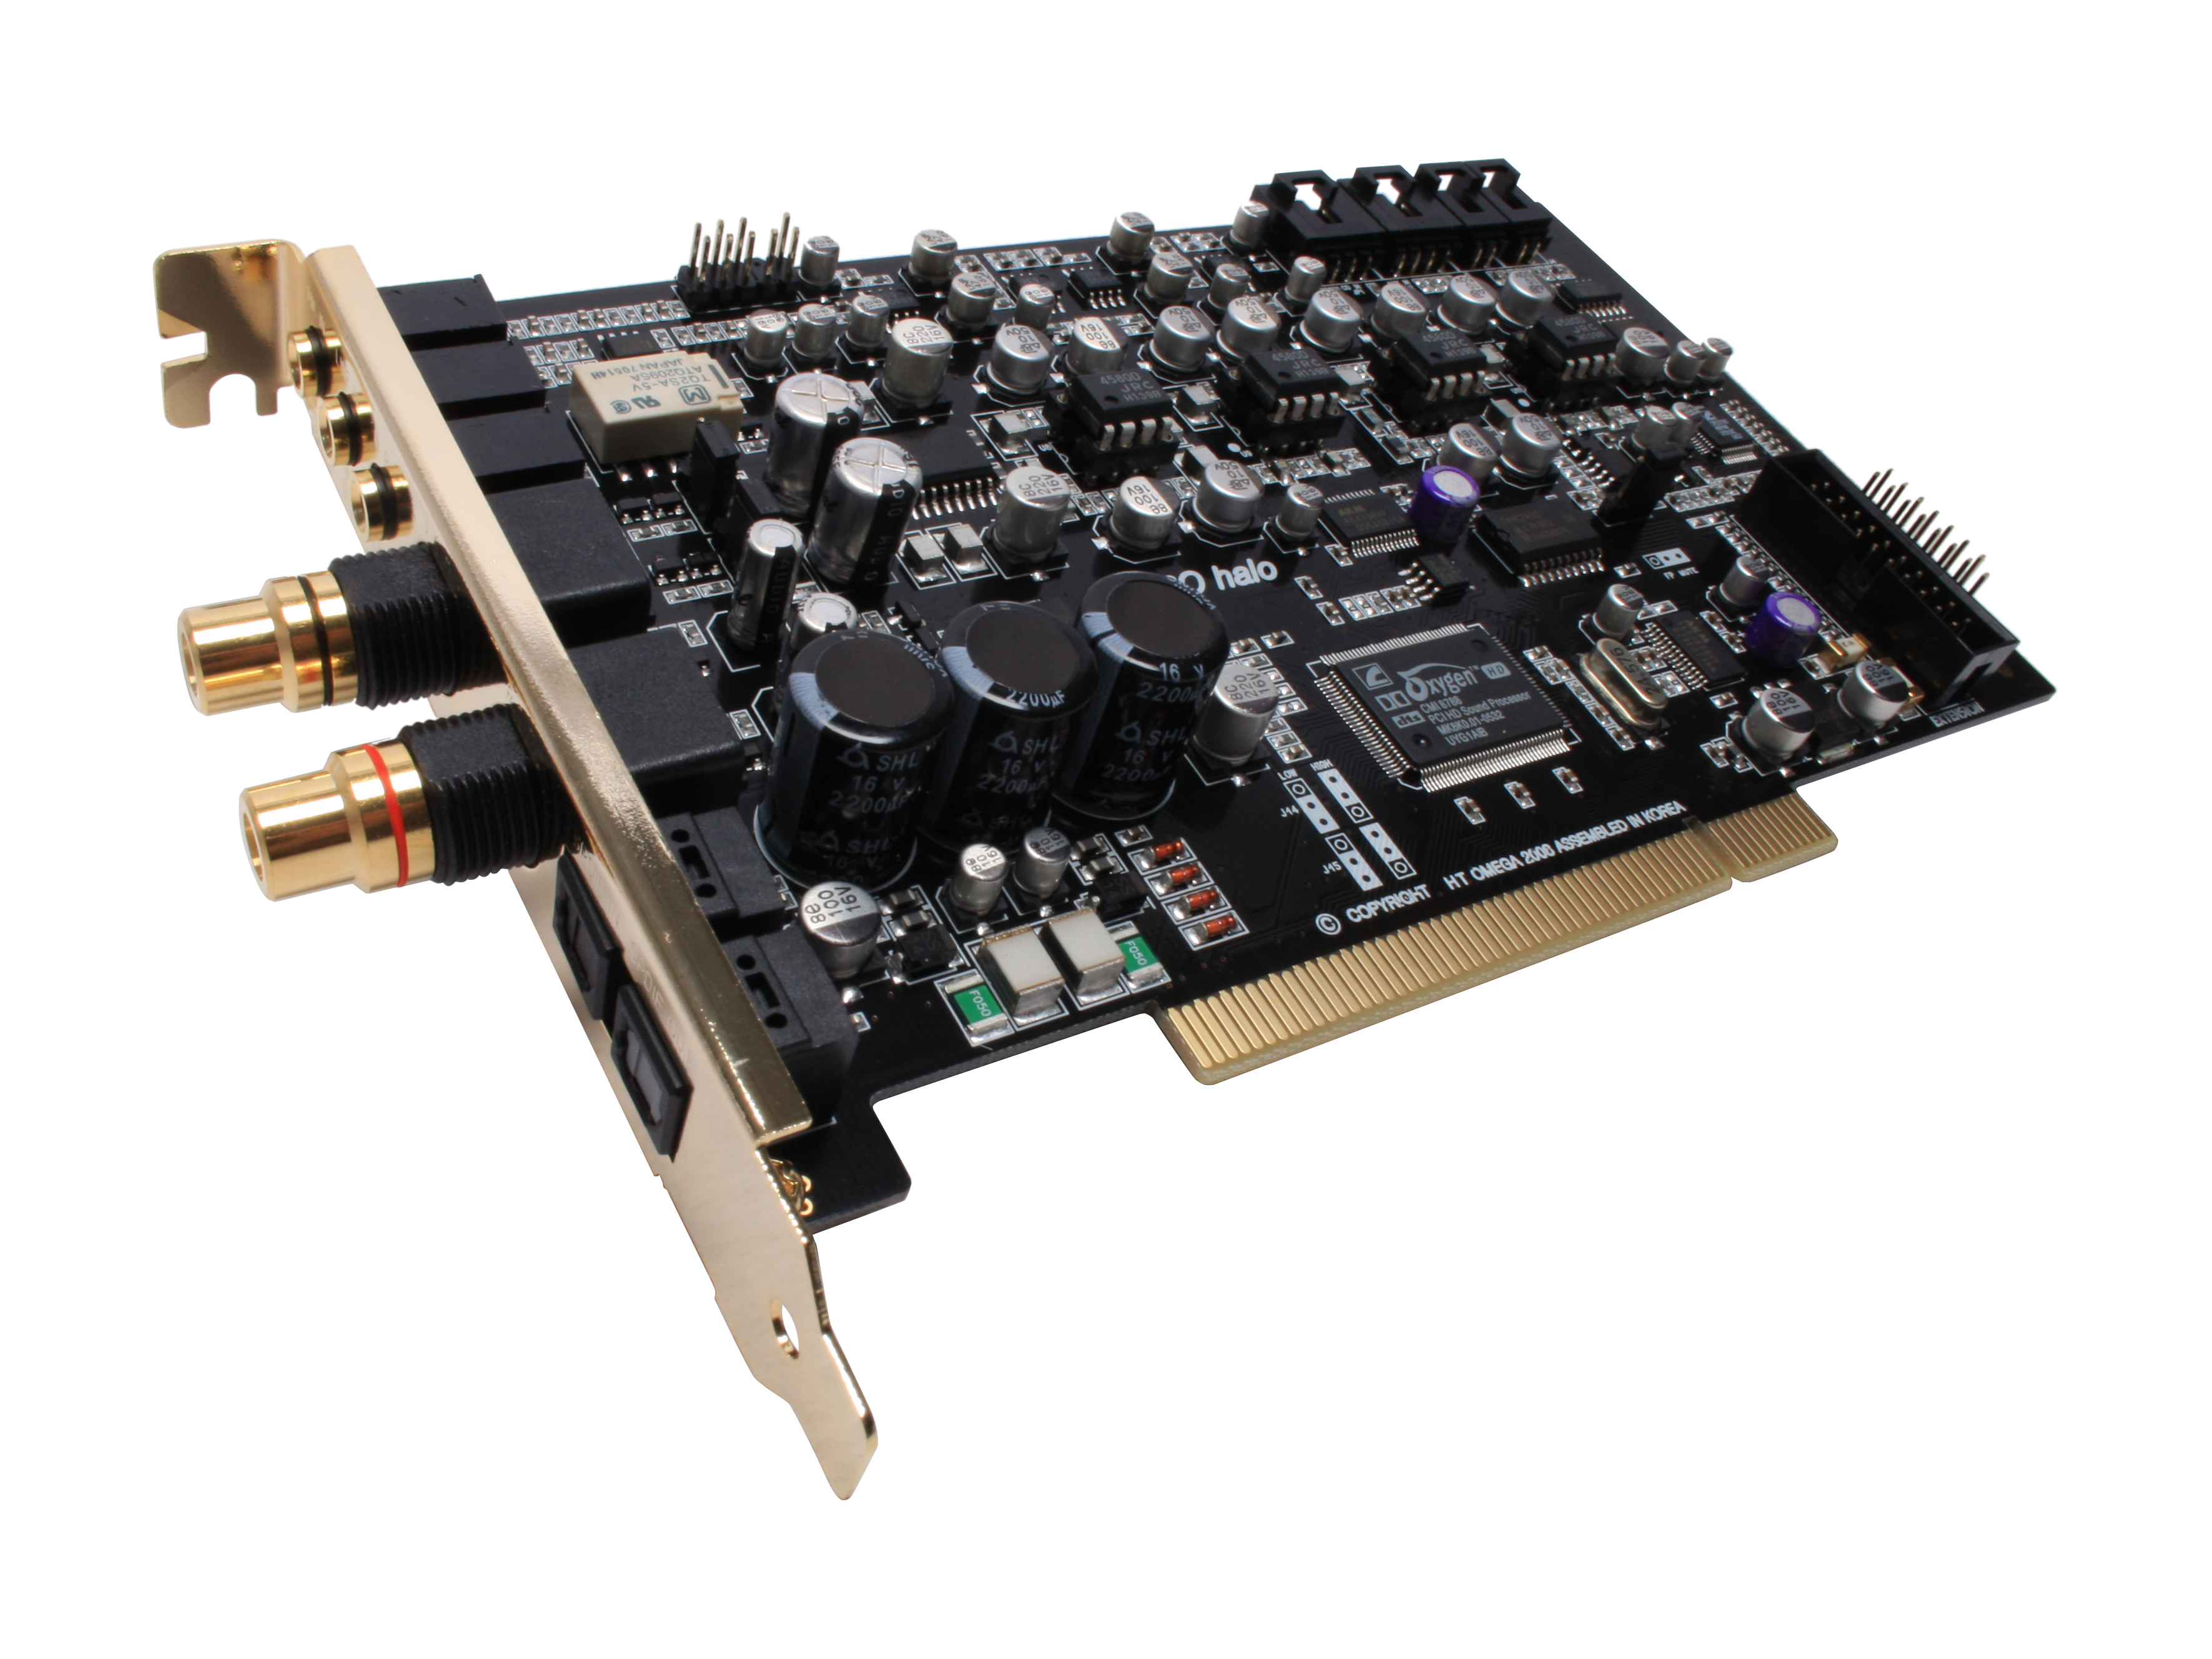 Ht Omega Claro Halo Sound Card W A Built In Hi Fi Headphone Amplifier